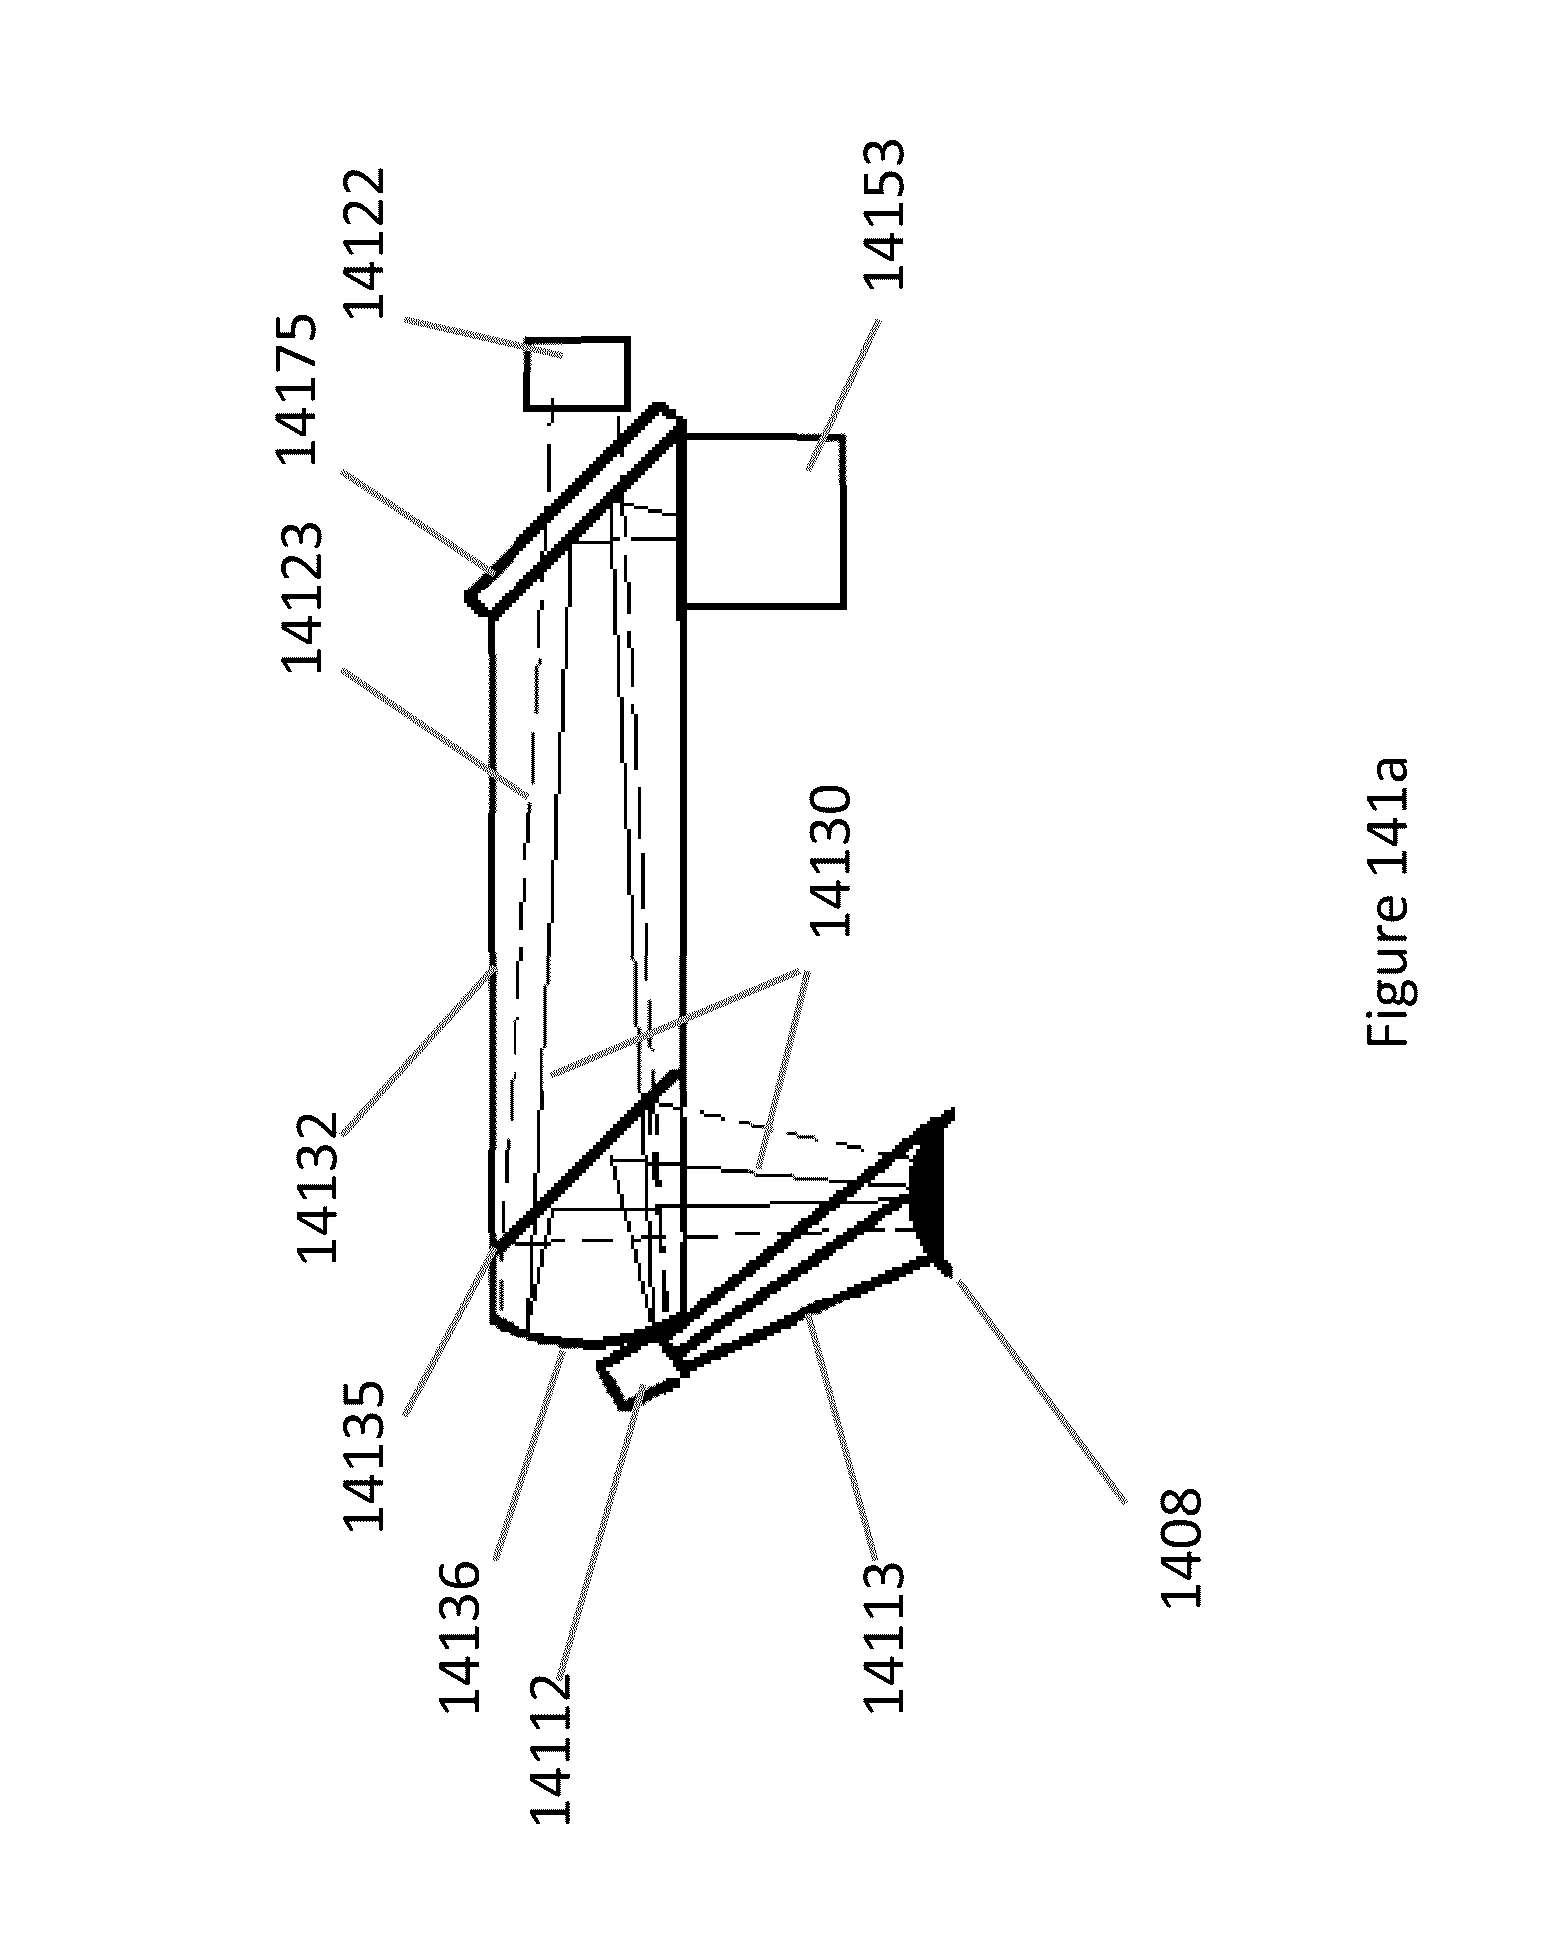 patent us 9 658 457 b2 Fire Spinkler System patent images